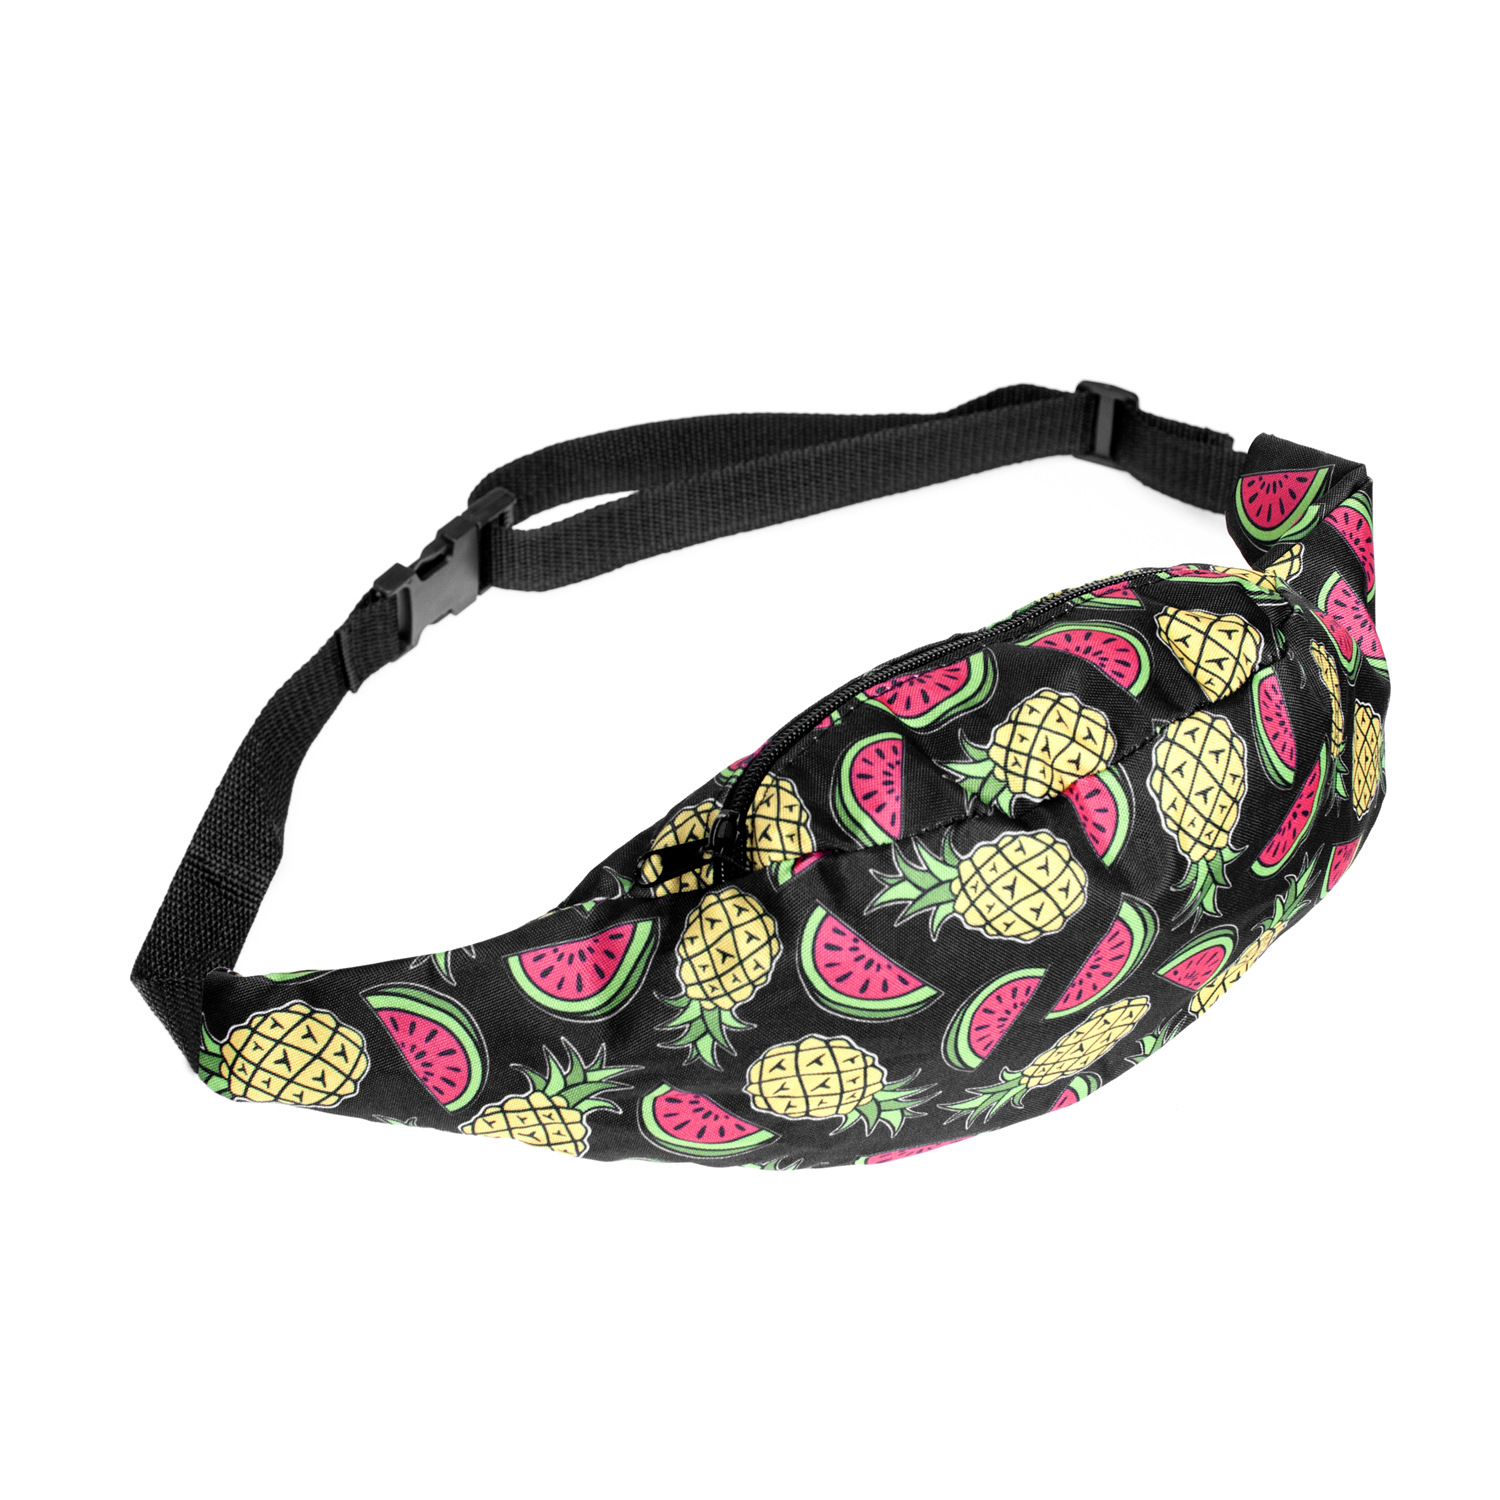 New Watermelon Pineapple Print Waterproof Waist Pack Belt Bag Waist Bag Chest Shoulder Bag Phone Holder With Adjustable Strap